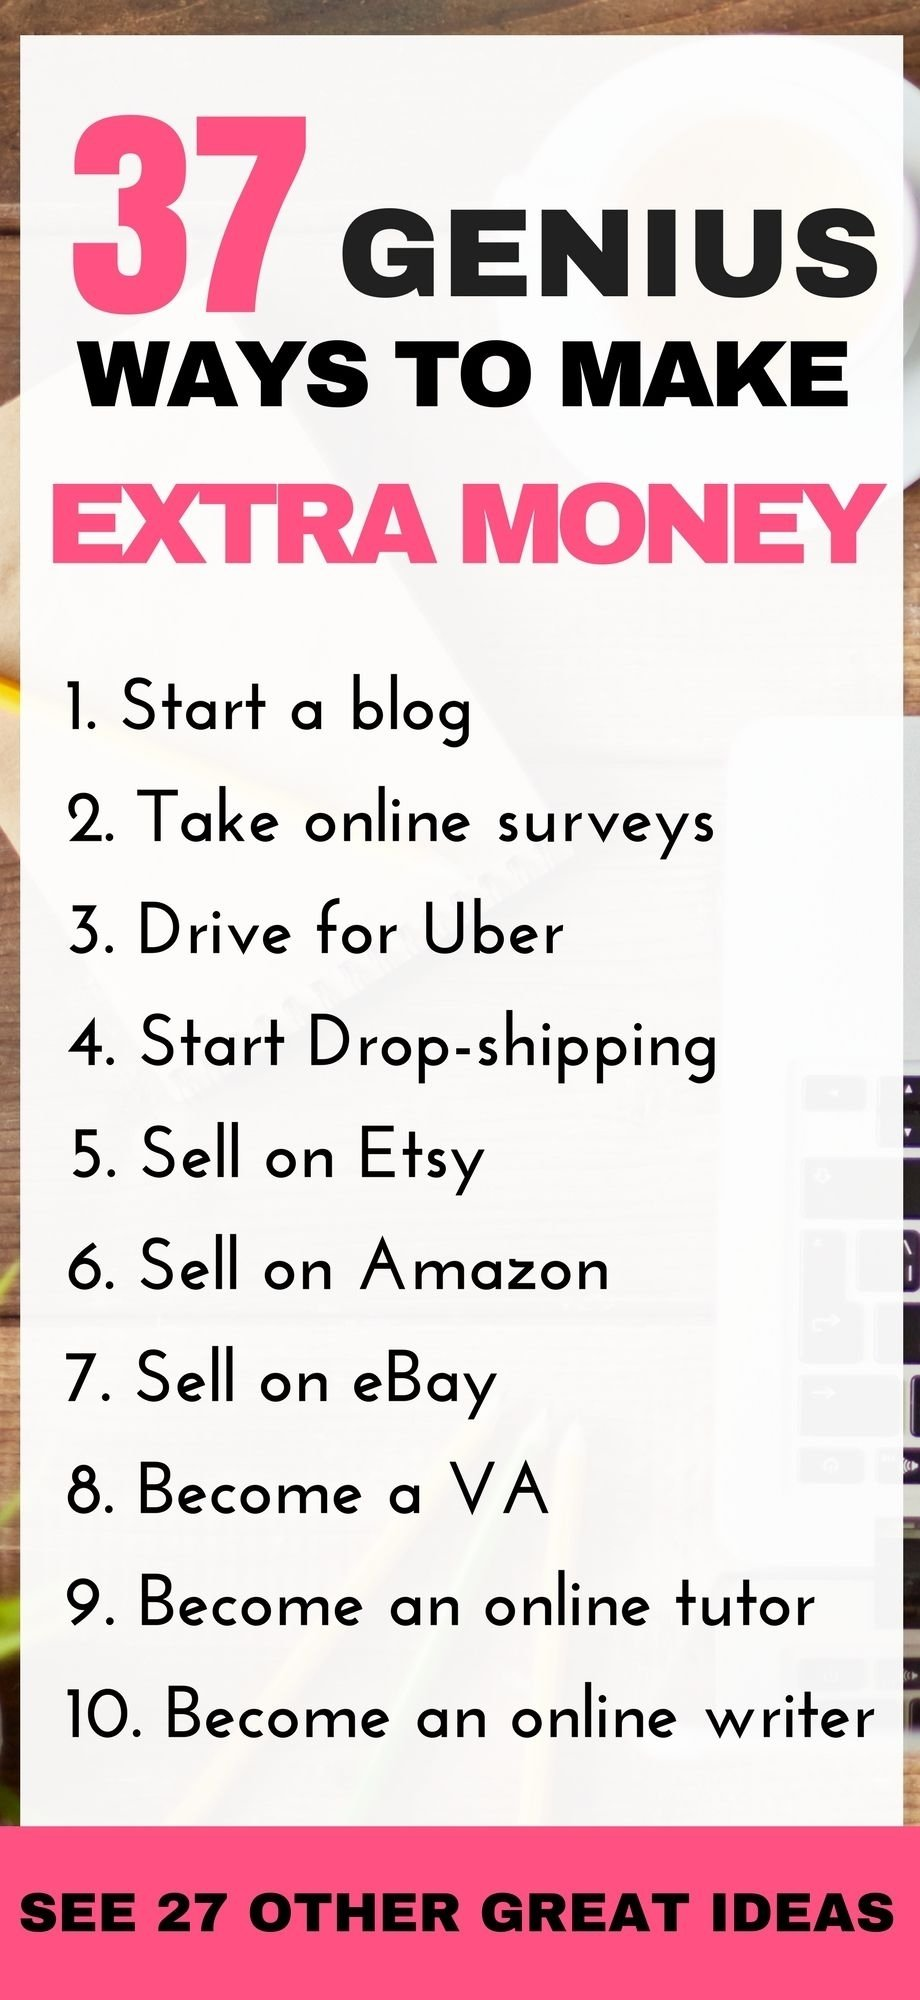 10 Fantastic Ideas To Earn Extra Money 30 genius ways to make extra money 1000 working from home 1 2020